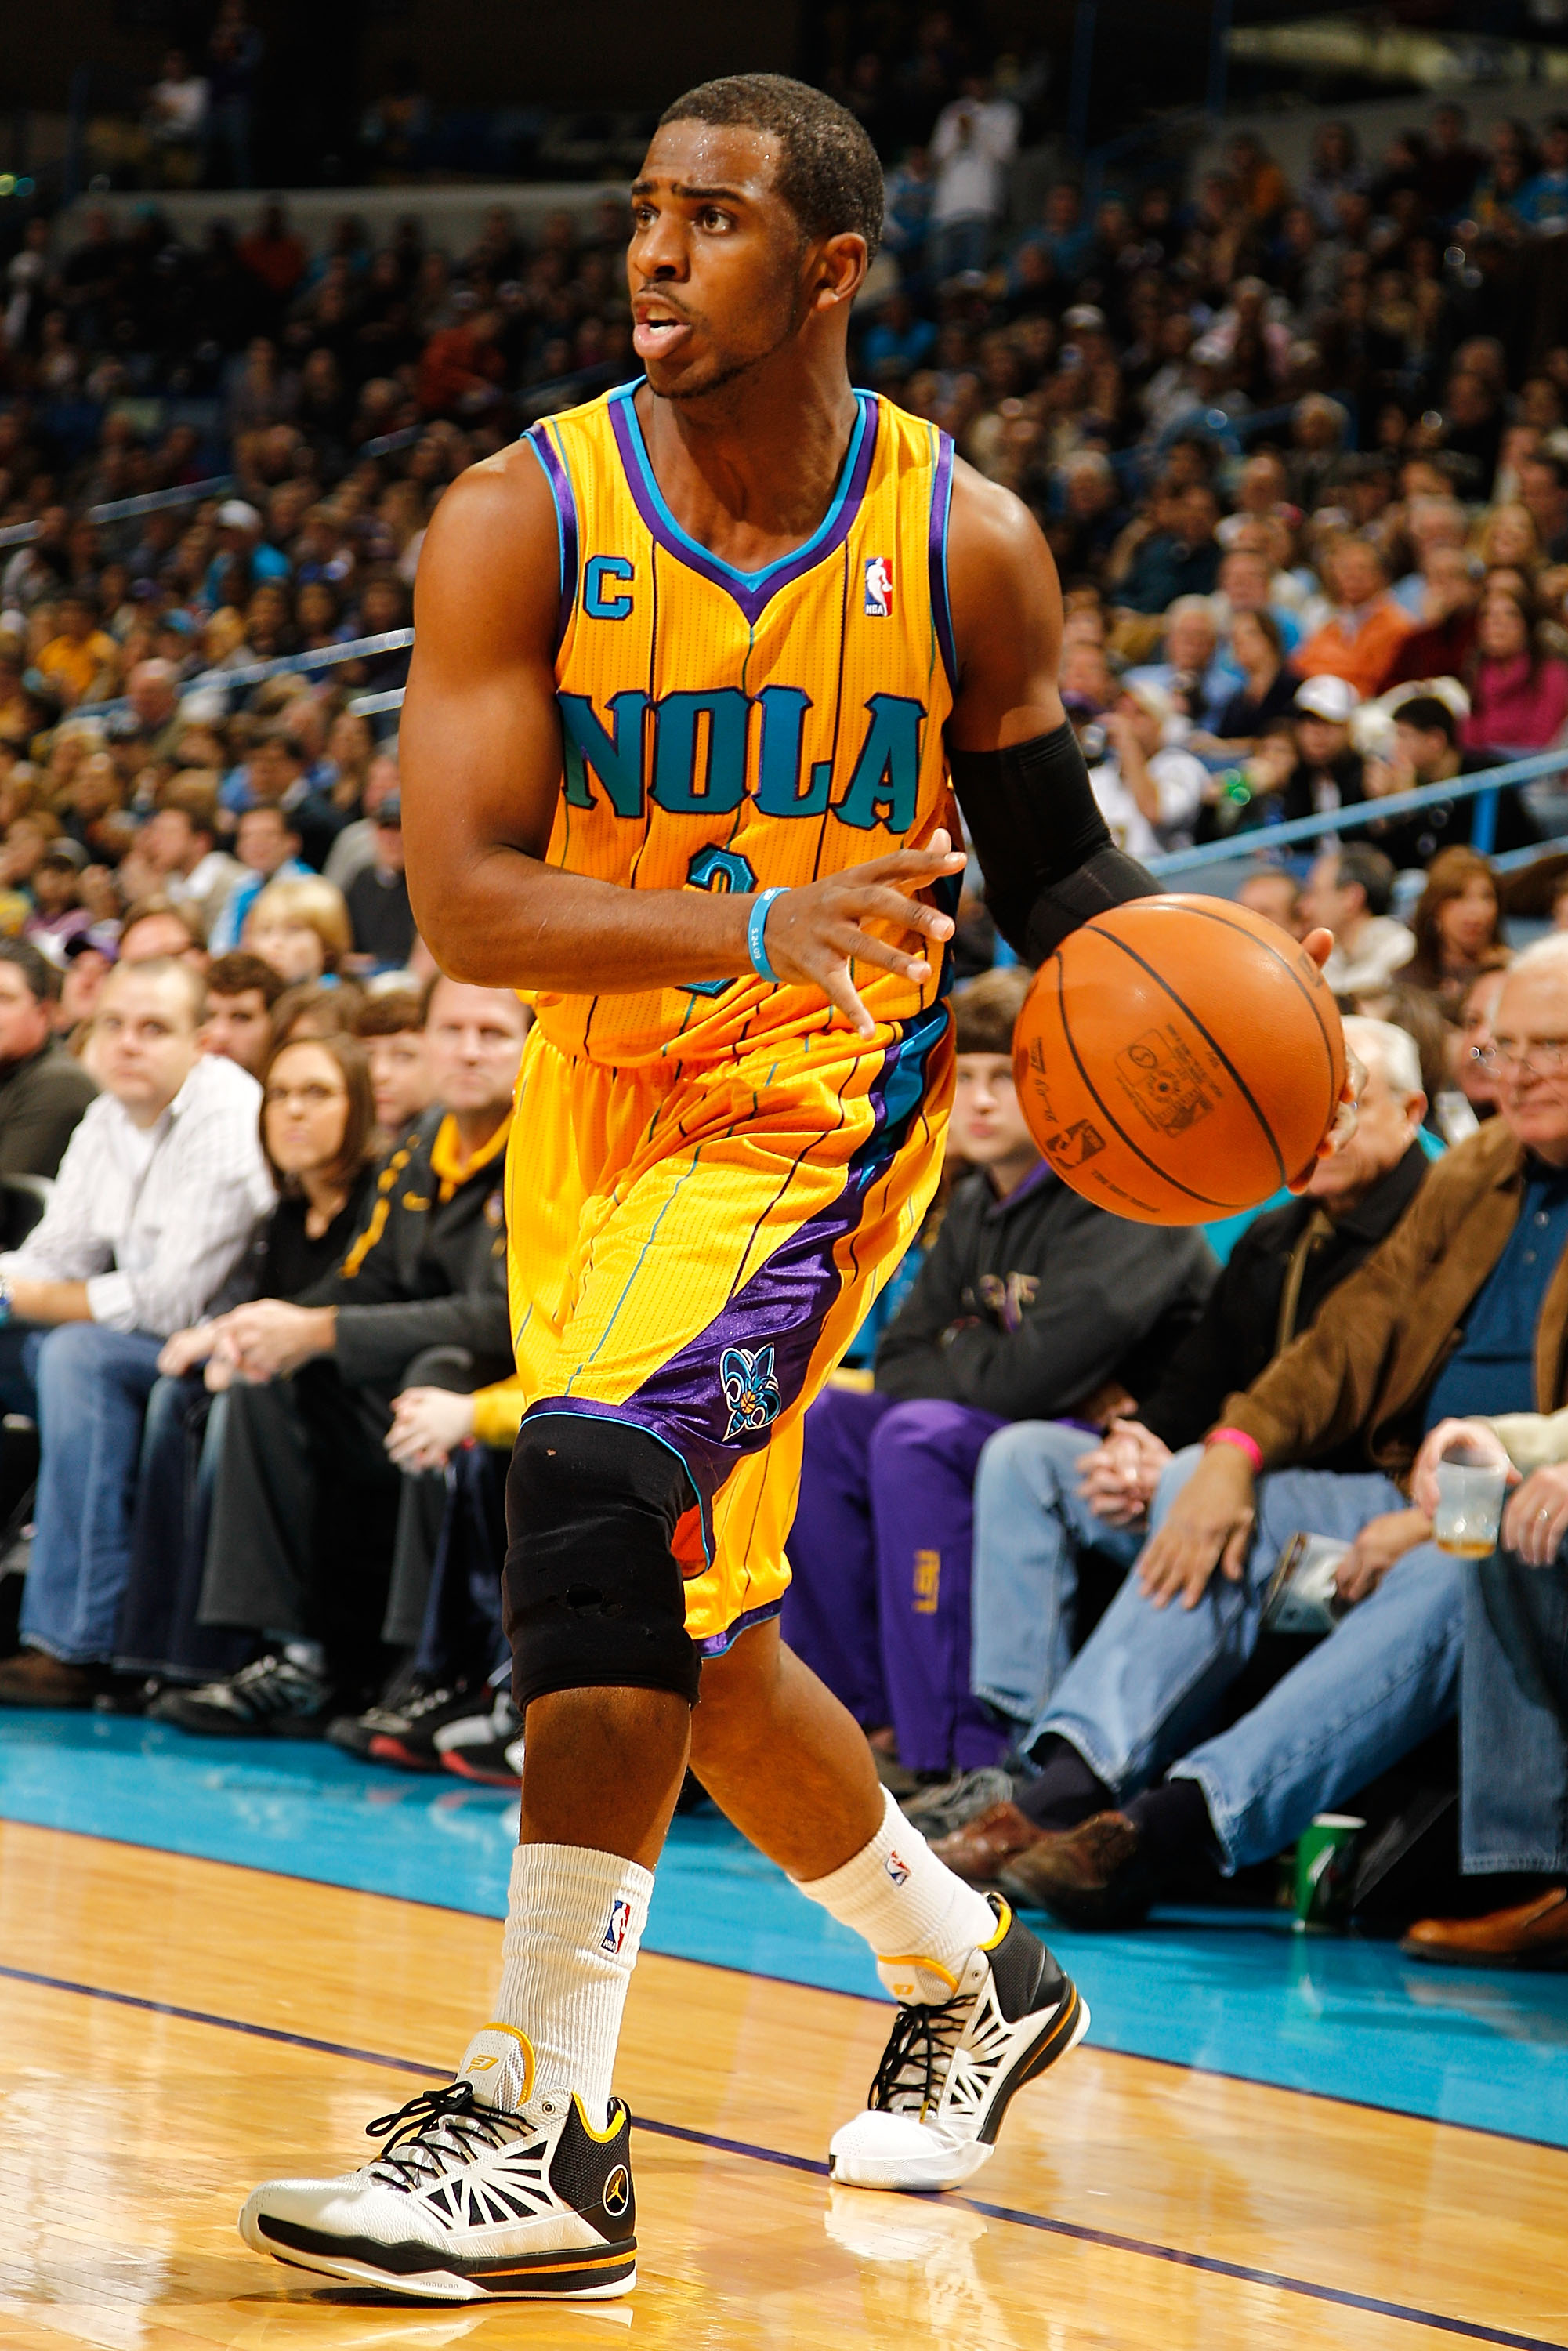 NEW ORLEANS, LA - JANUARY 22:  Chris Paul #3 of the New Orleans Hornets looks to pass the ball during the game against the San Antonio Spurs at the New Orleans Arena on January 22, 2011 in New Orleans, Louisiana.  The Hornets defeated the Spurs 96-72.  NO